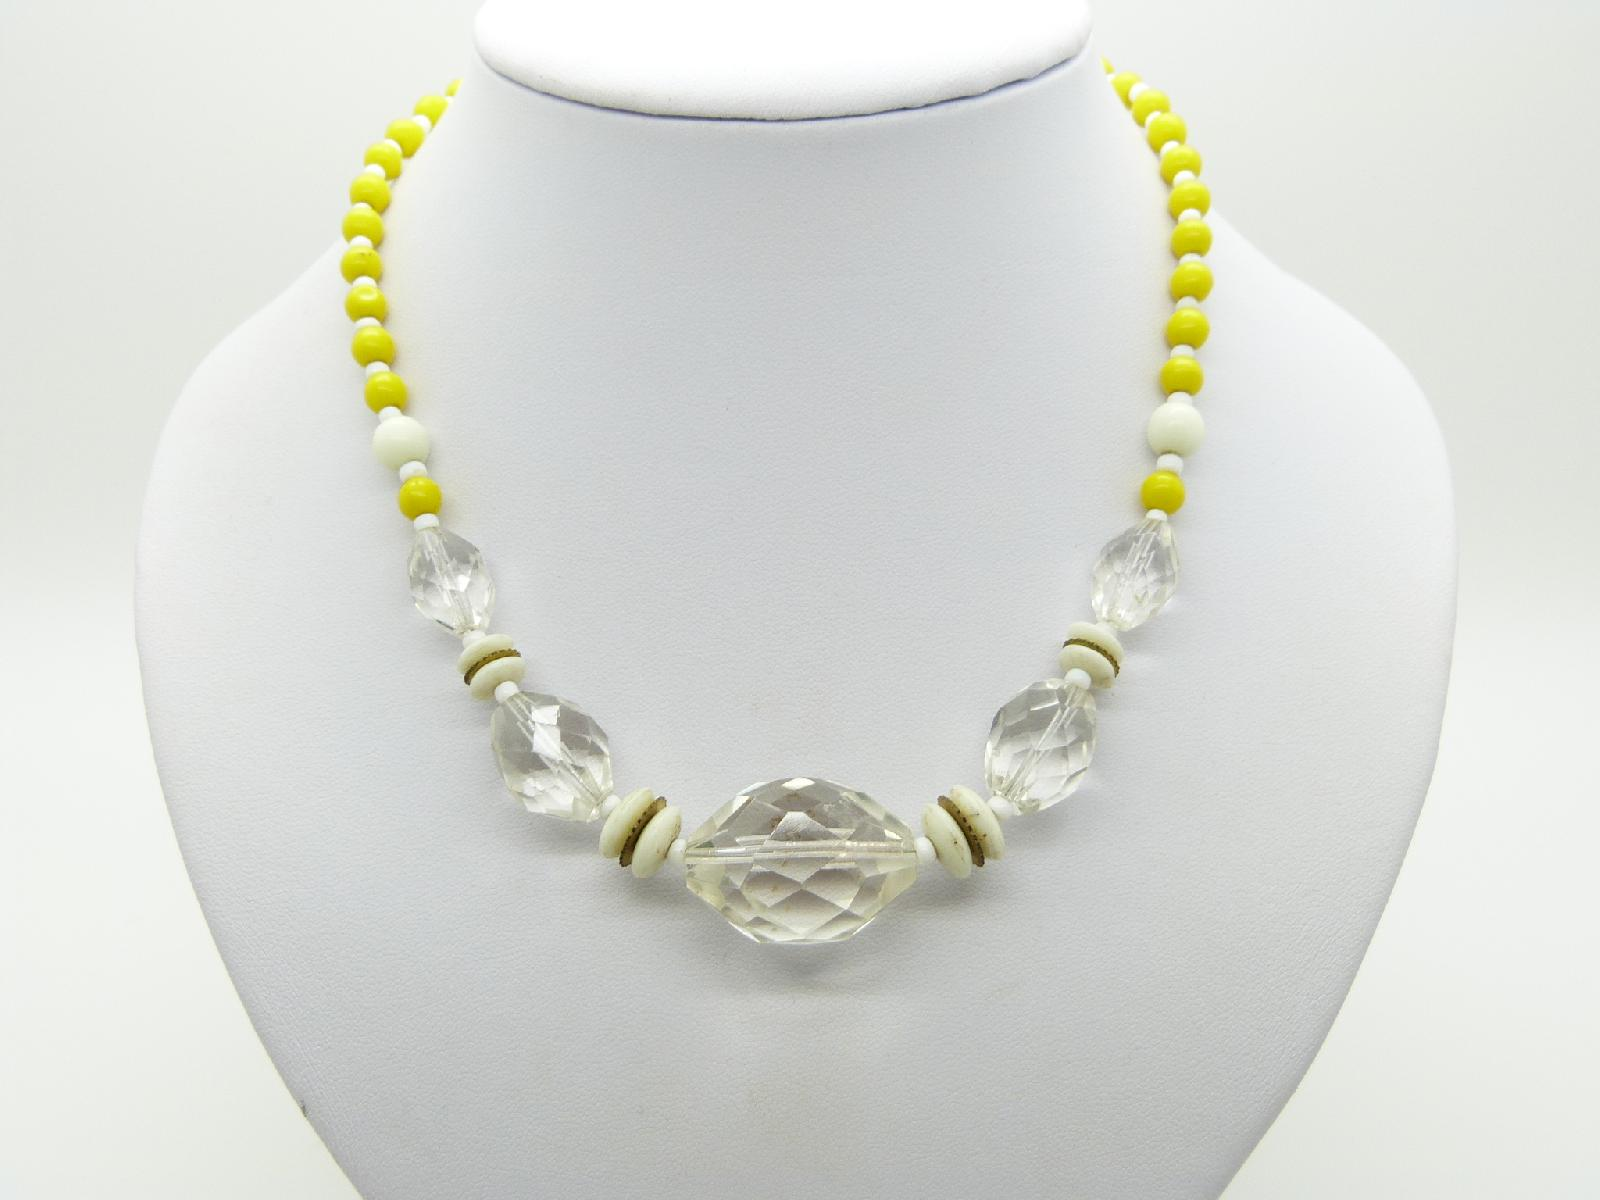 £15.00 - Vintage 50s Yellow White and Crystal Glass Bead Czech Necklace Diamante Clasp